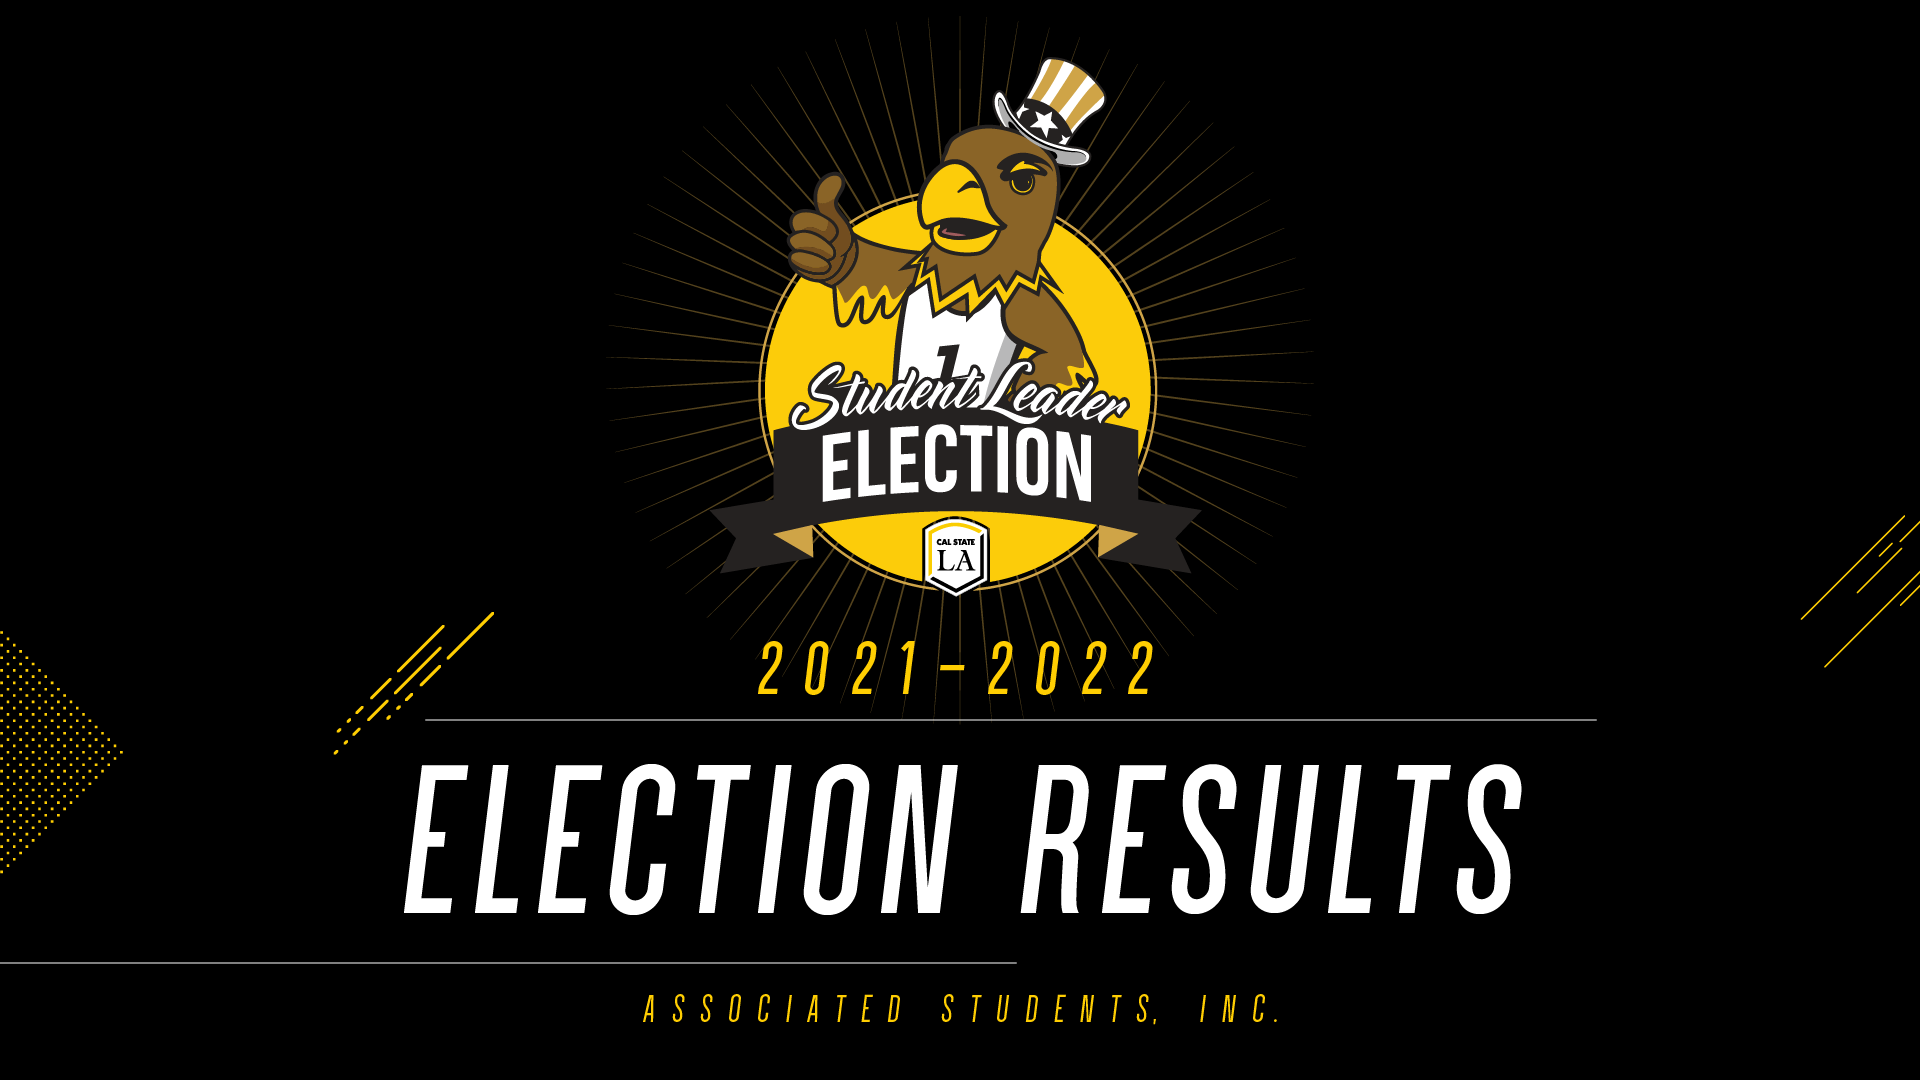 2021 Election Results Announcement